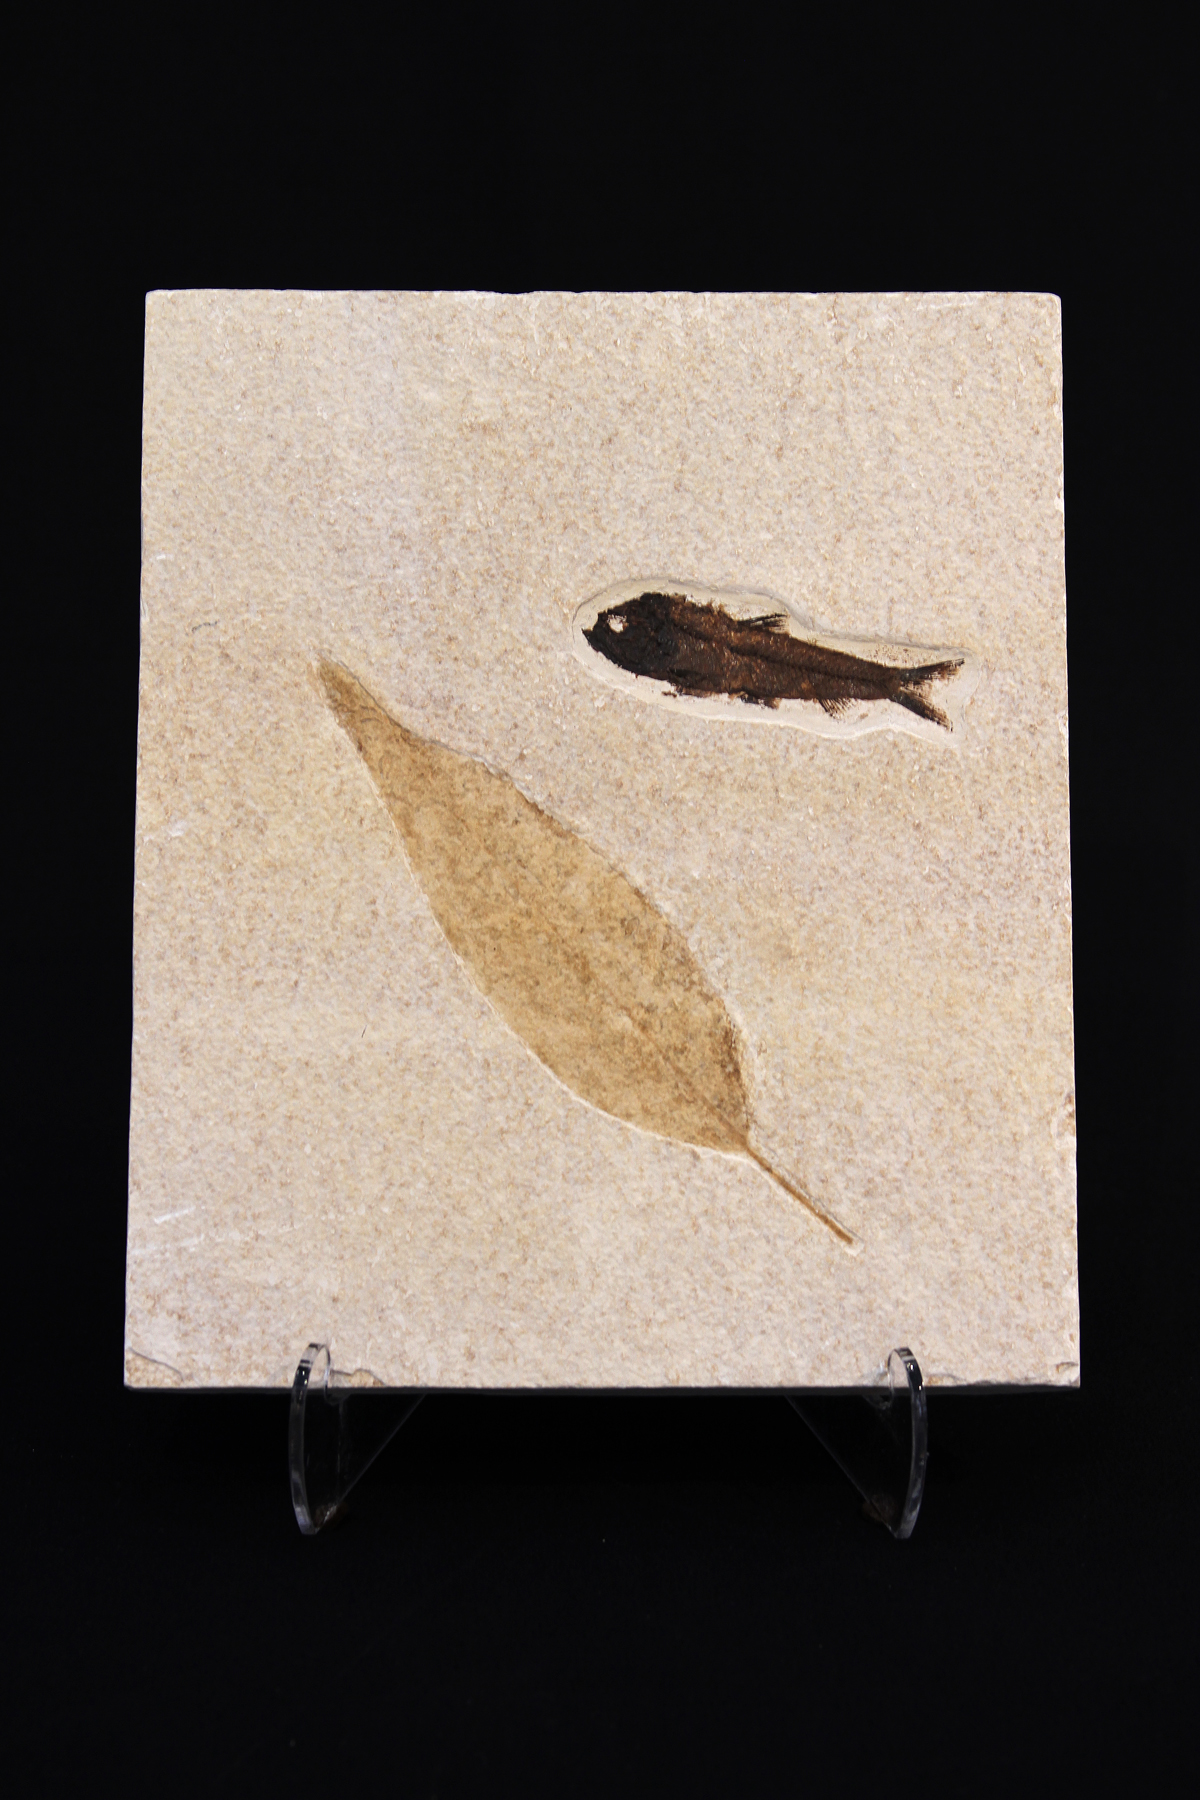 Green River fossil fish and leaf